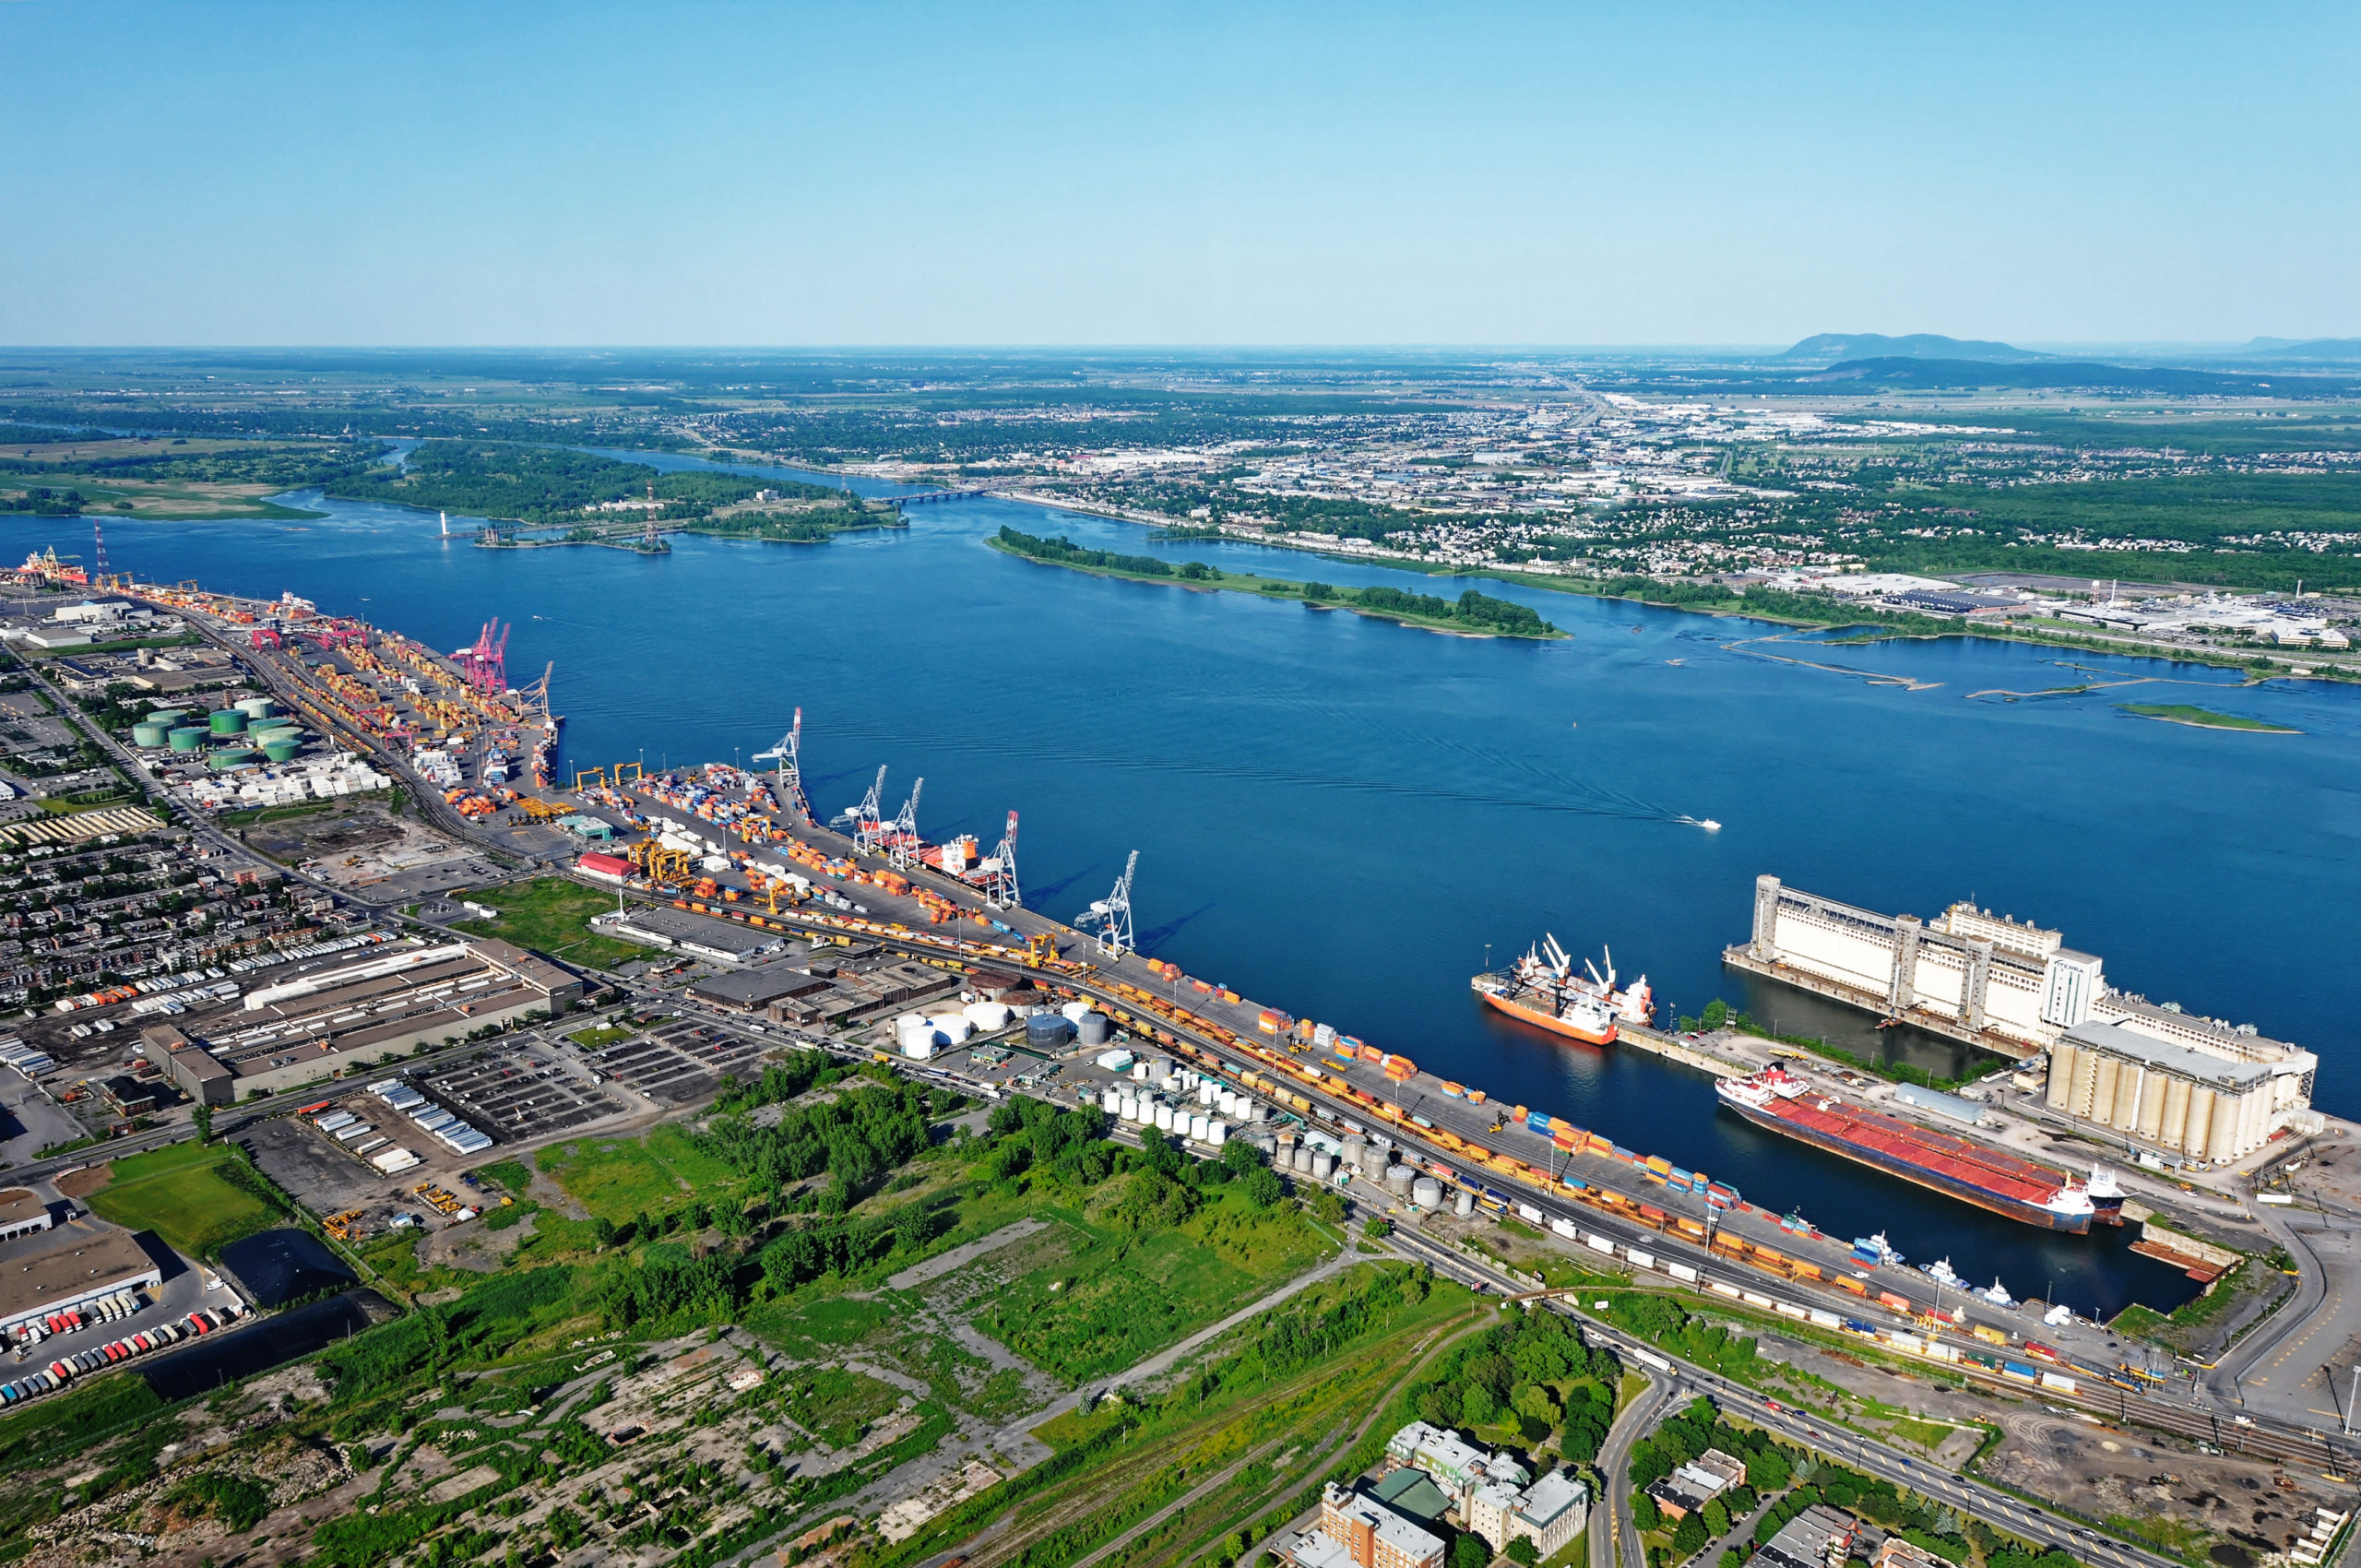 Aerial view of the eastern section of the Port of Montreal